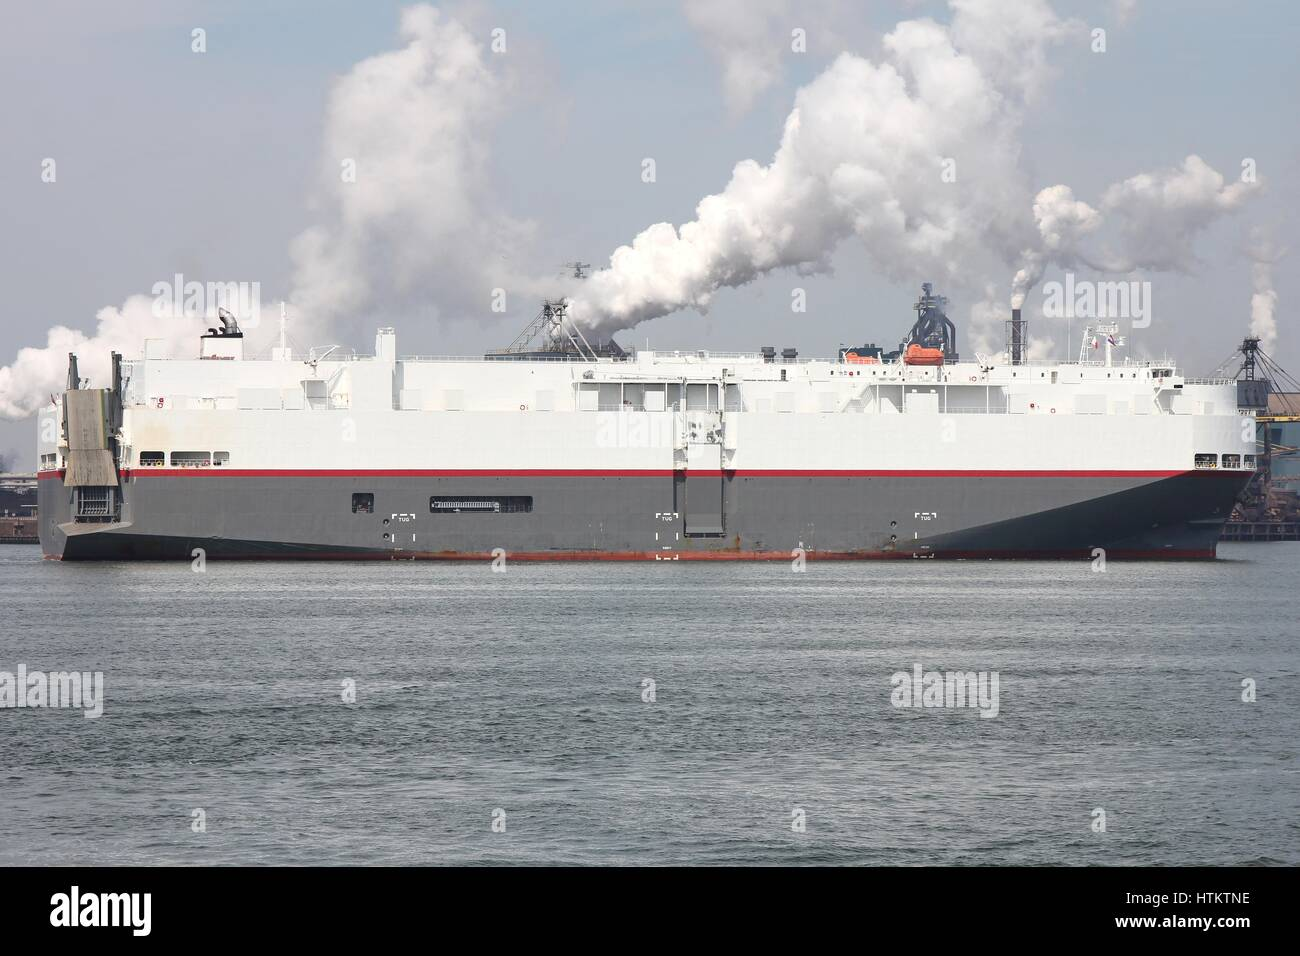 pure car and truck carrier entering harbor - Stock Image